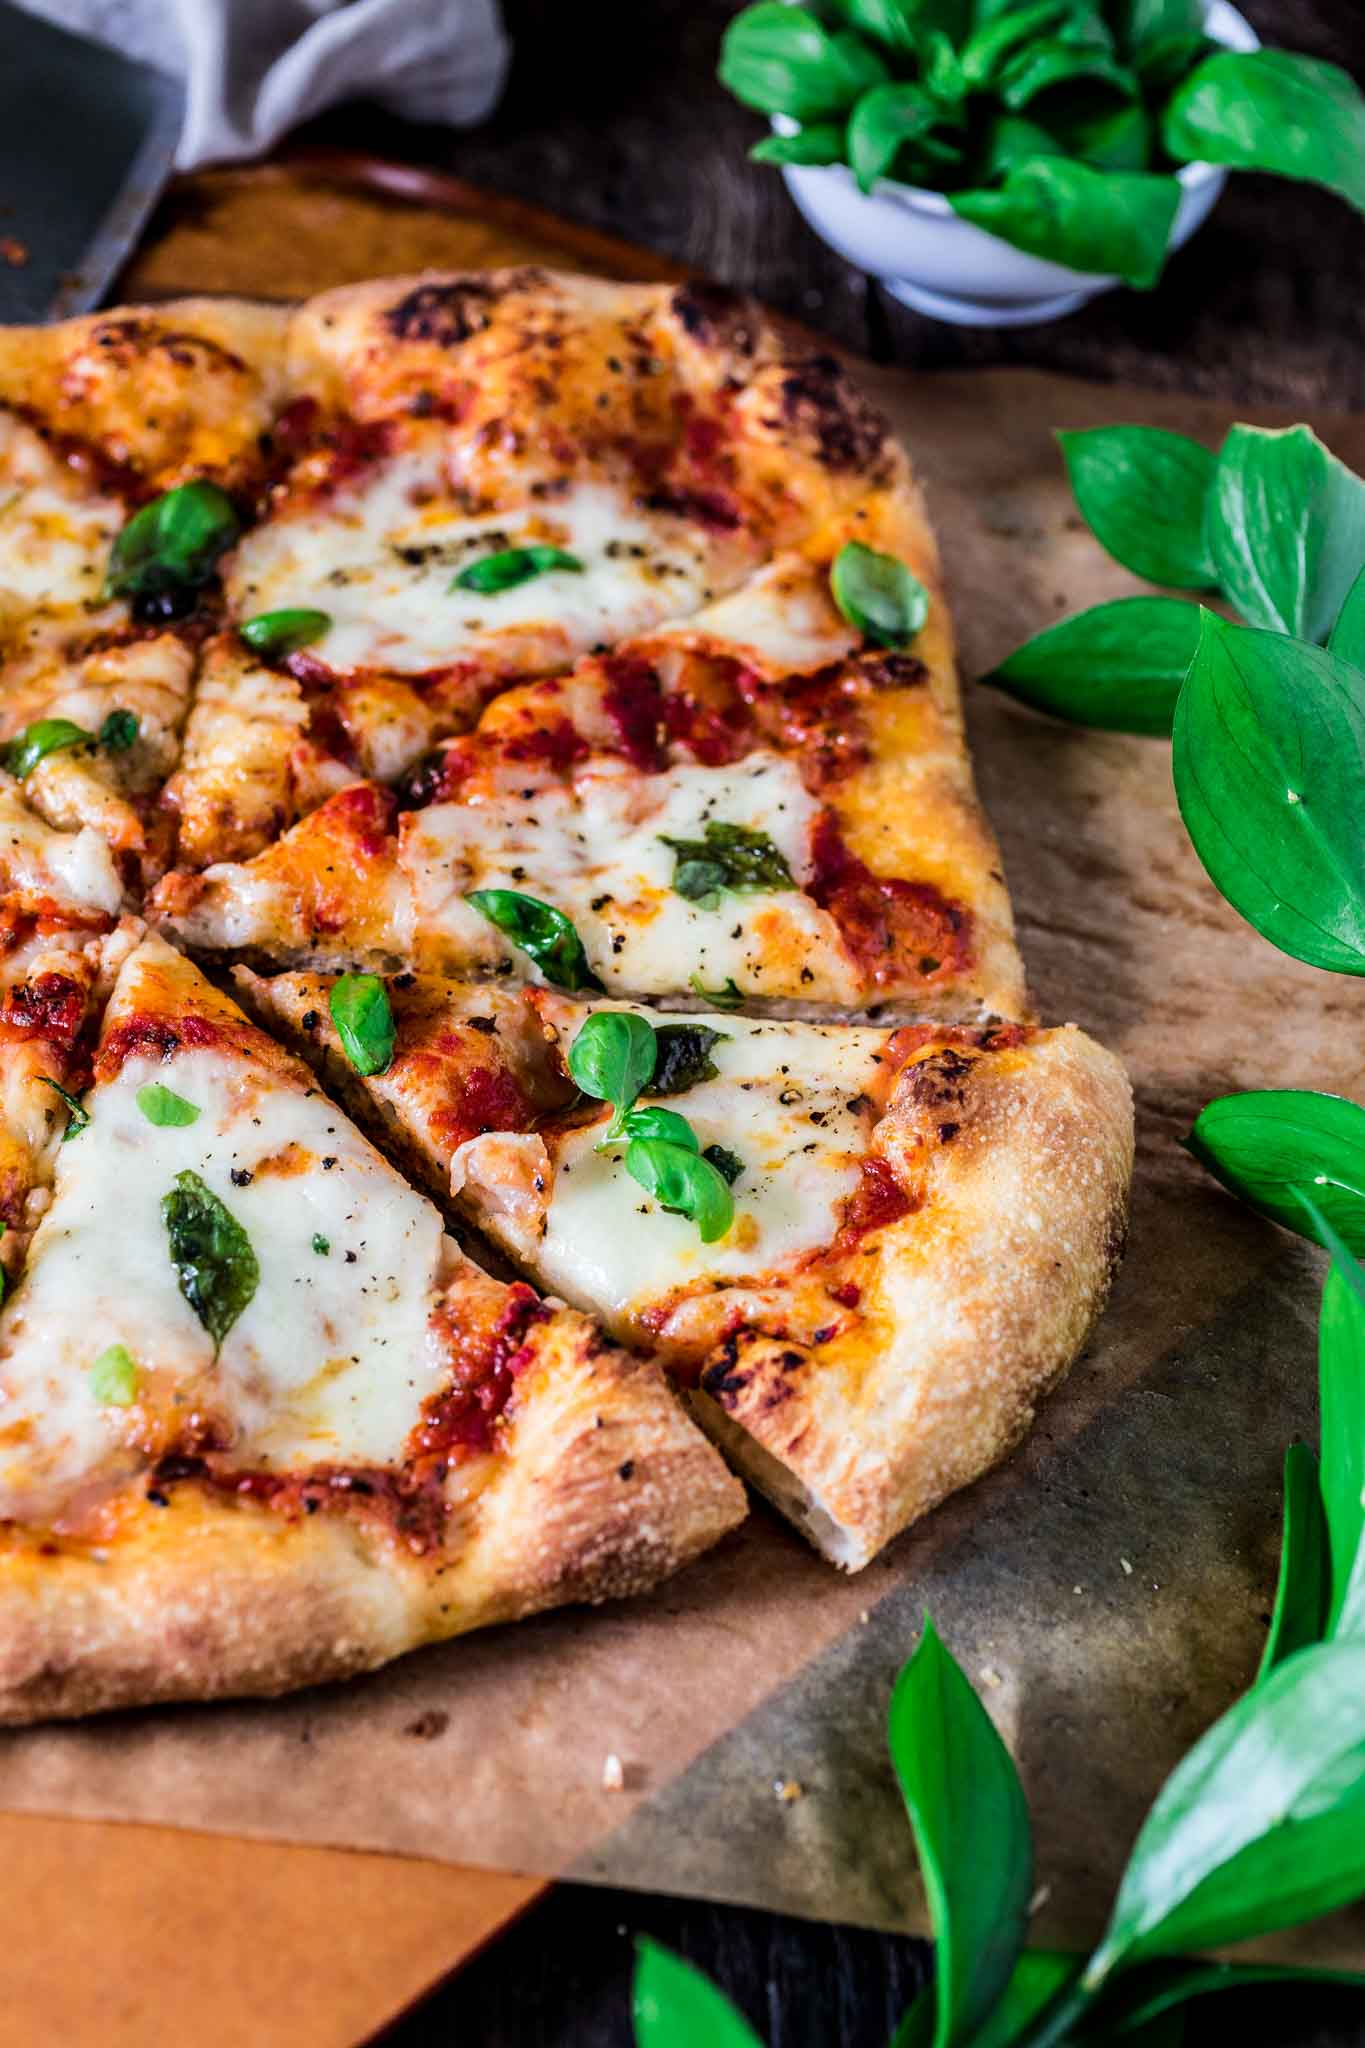 Classic Pizza Margherita   www.oliviascuisine.com   This delicious Margherita pizza is proof that some of the best things in life are the simplest. Only a few fresh ingredients create this iconic pizza from Naples. (In partnership with @Mezzetta.)